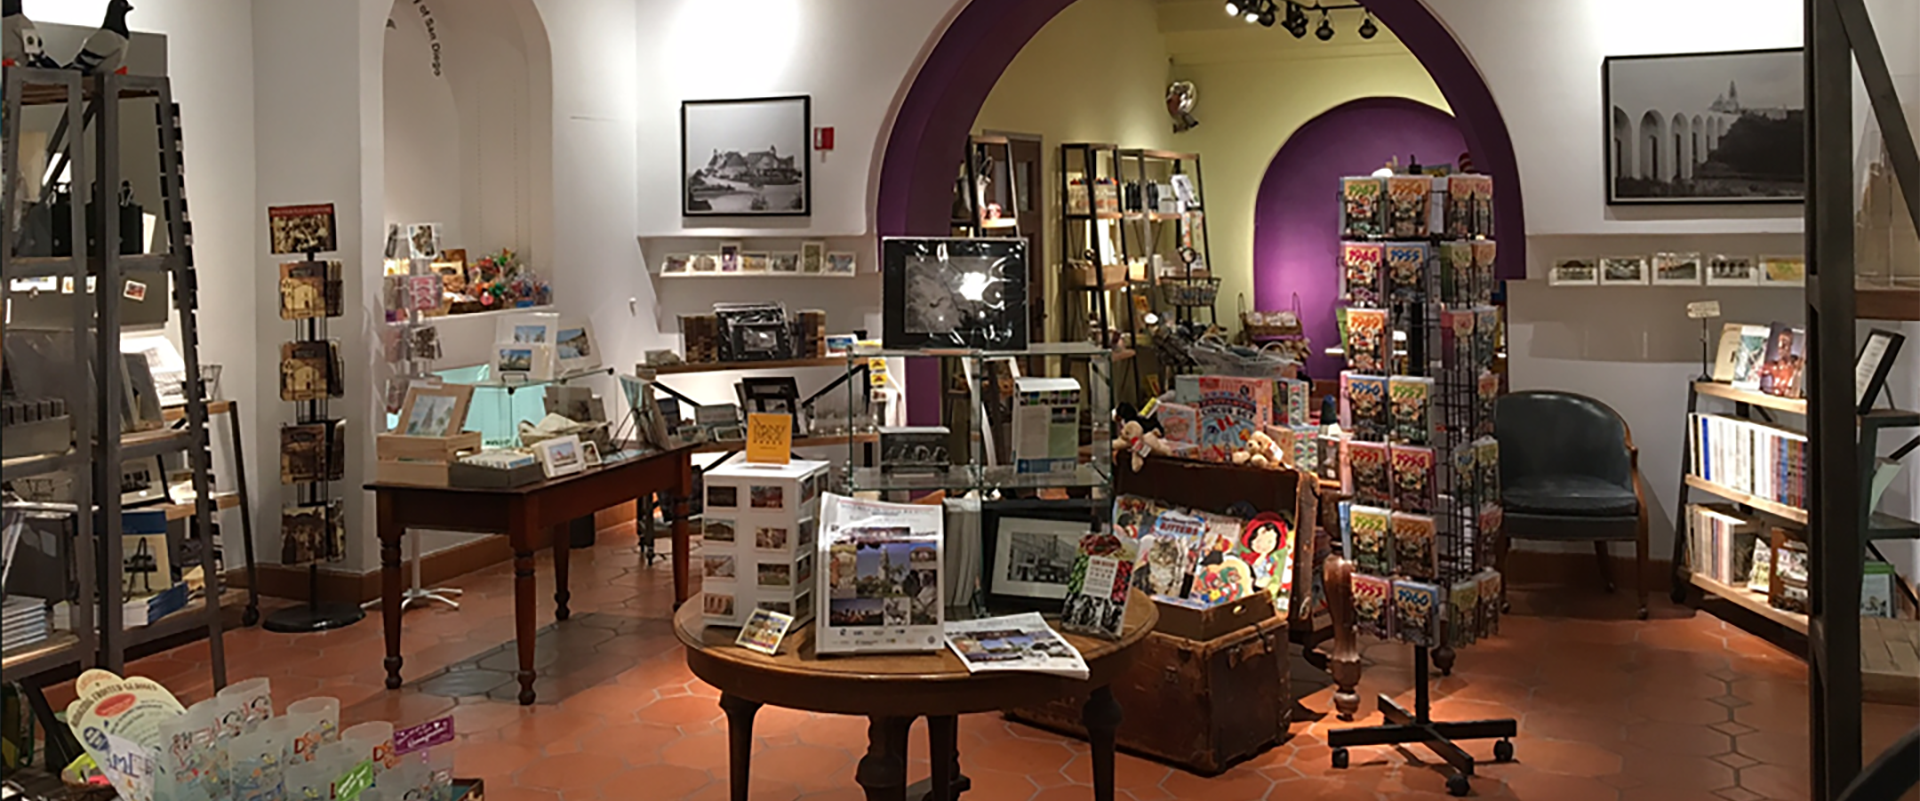 San Diego History Center Gift Shop